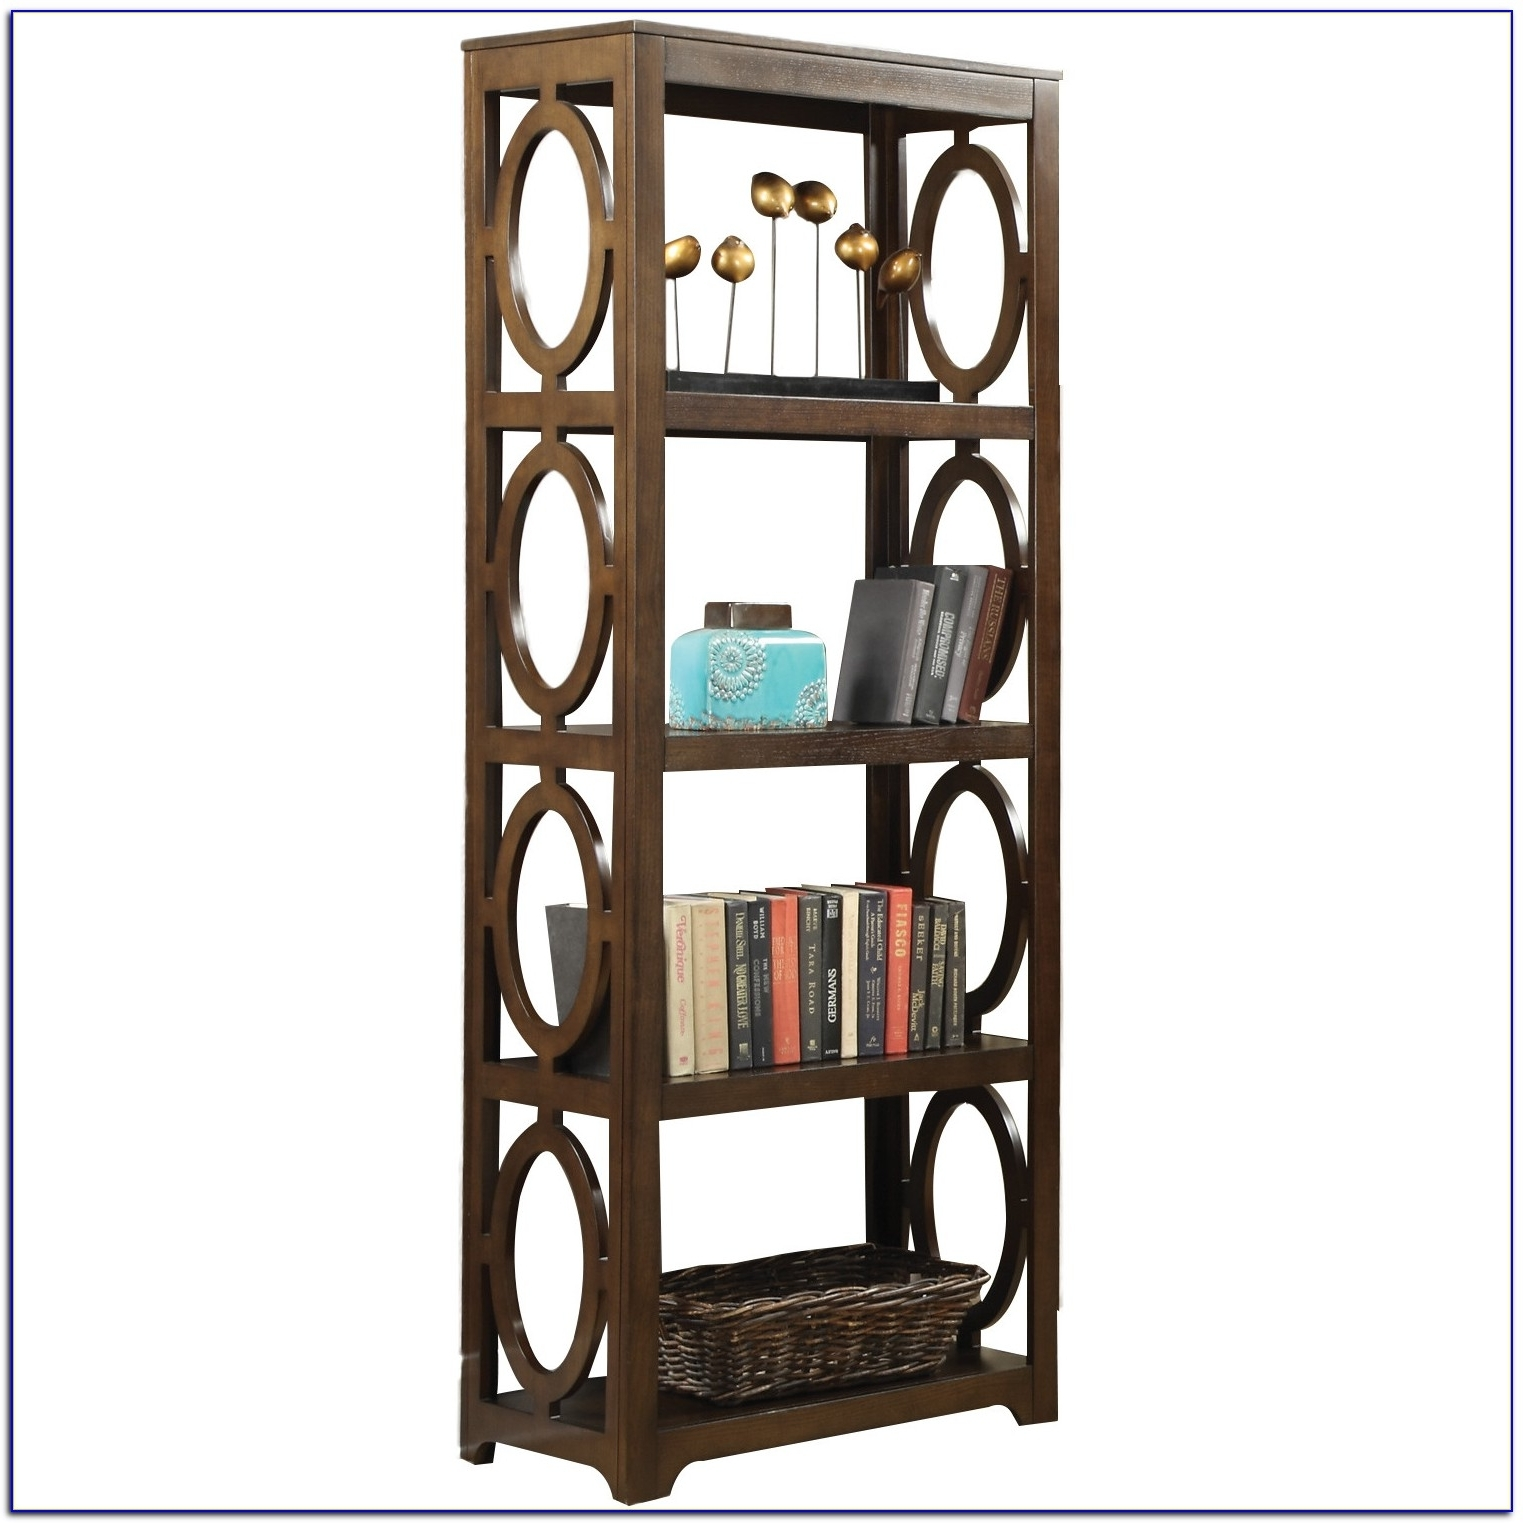 Preferred Wildon Home Bookcases Inside Furniture Home: Furniture Home Wildon Bookcase Best Shelves Images (View 7 of 15)